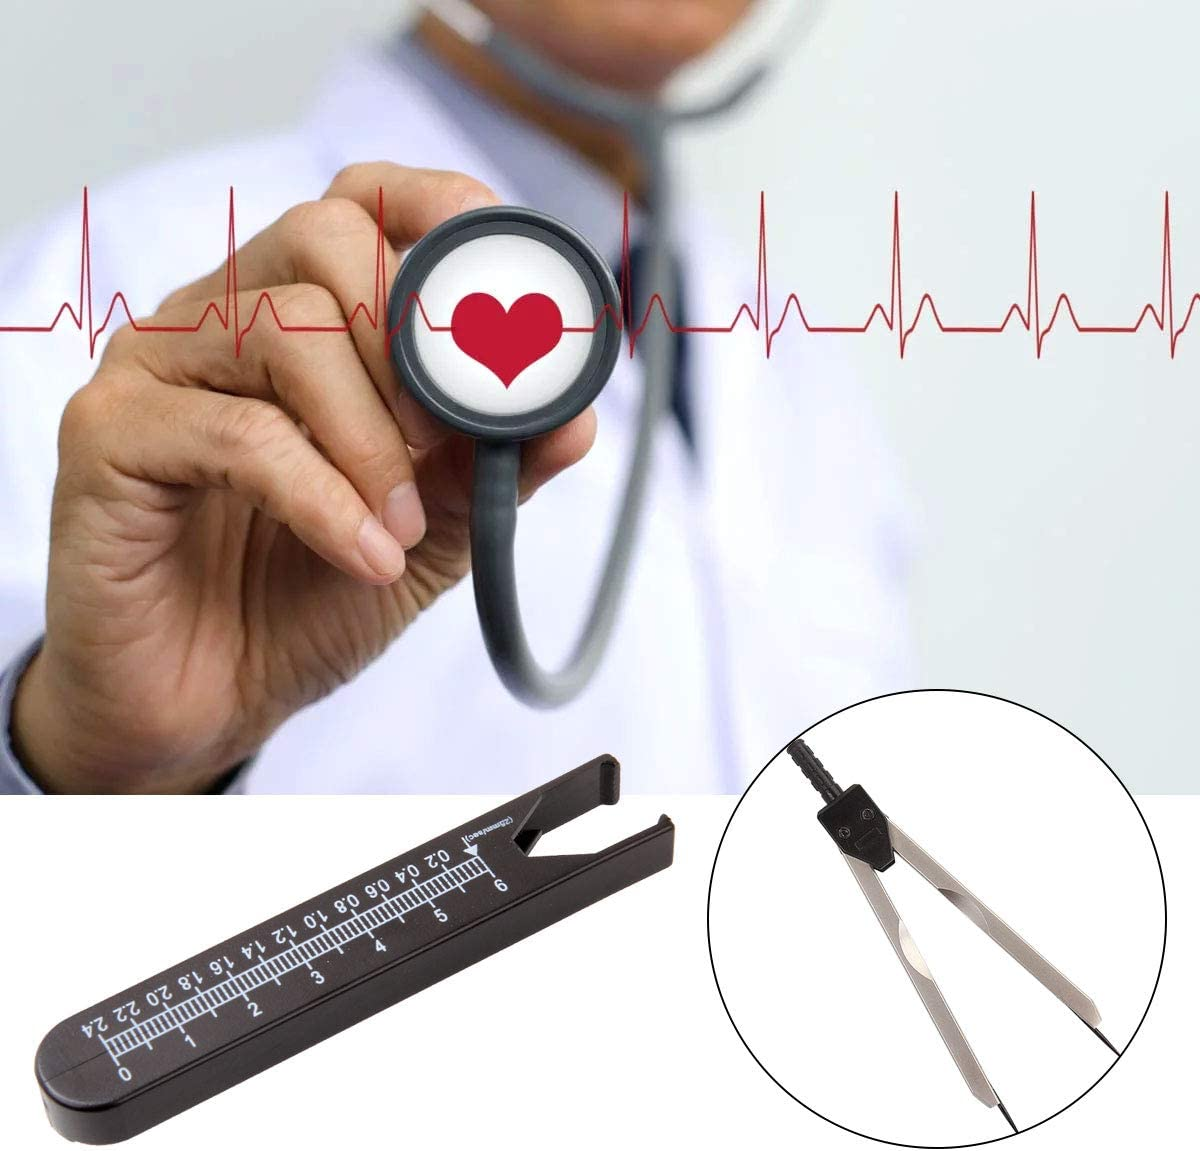 11.5cm//4.5inch HNBun ECG Calipers Measuring Tool Black EKG Calipers Electrocardiogram Divider for Nursing